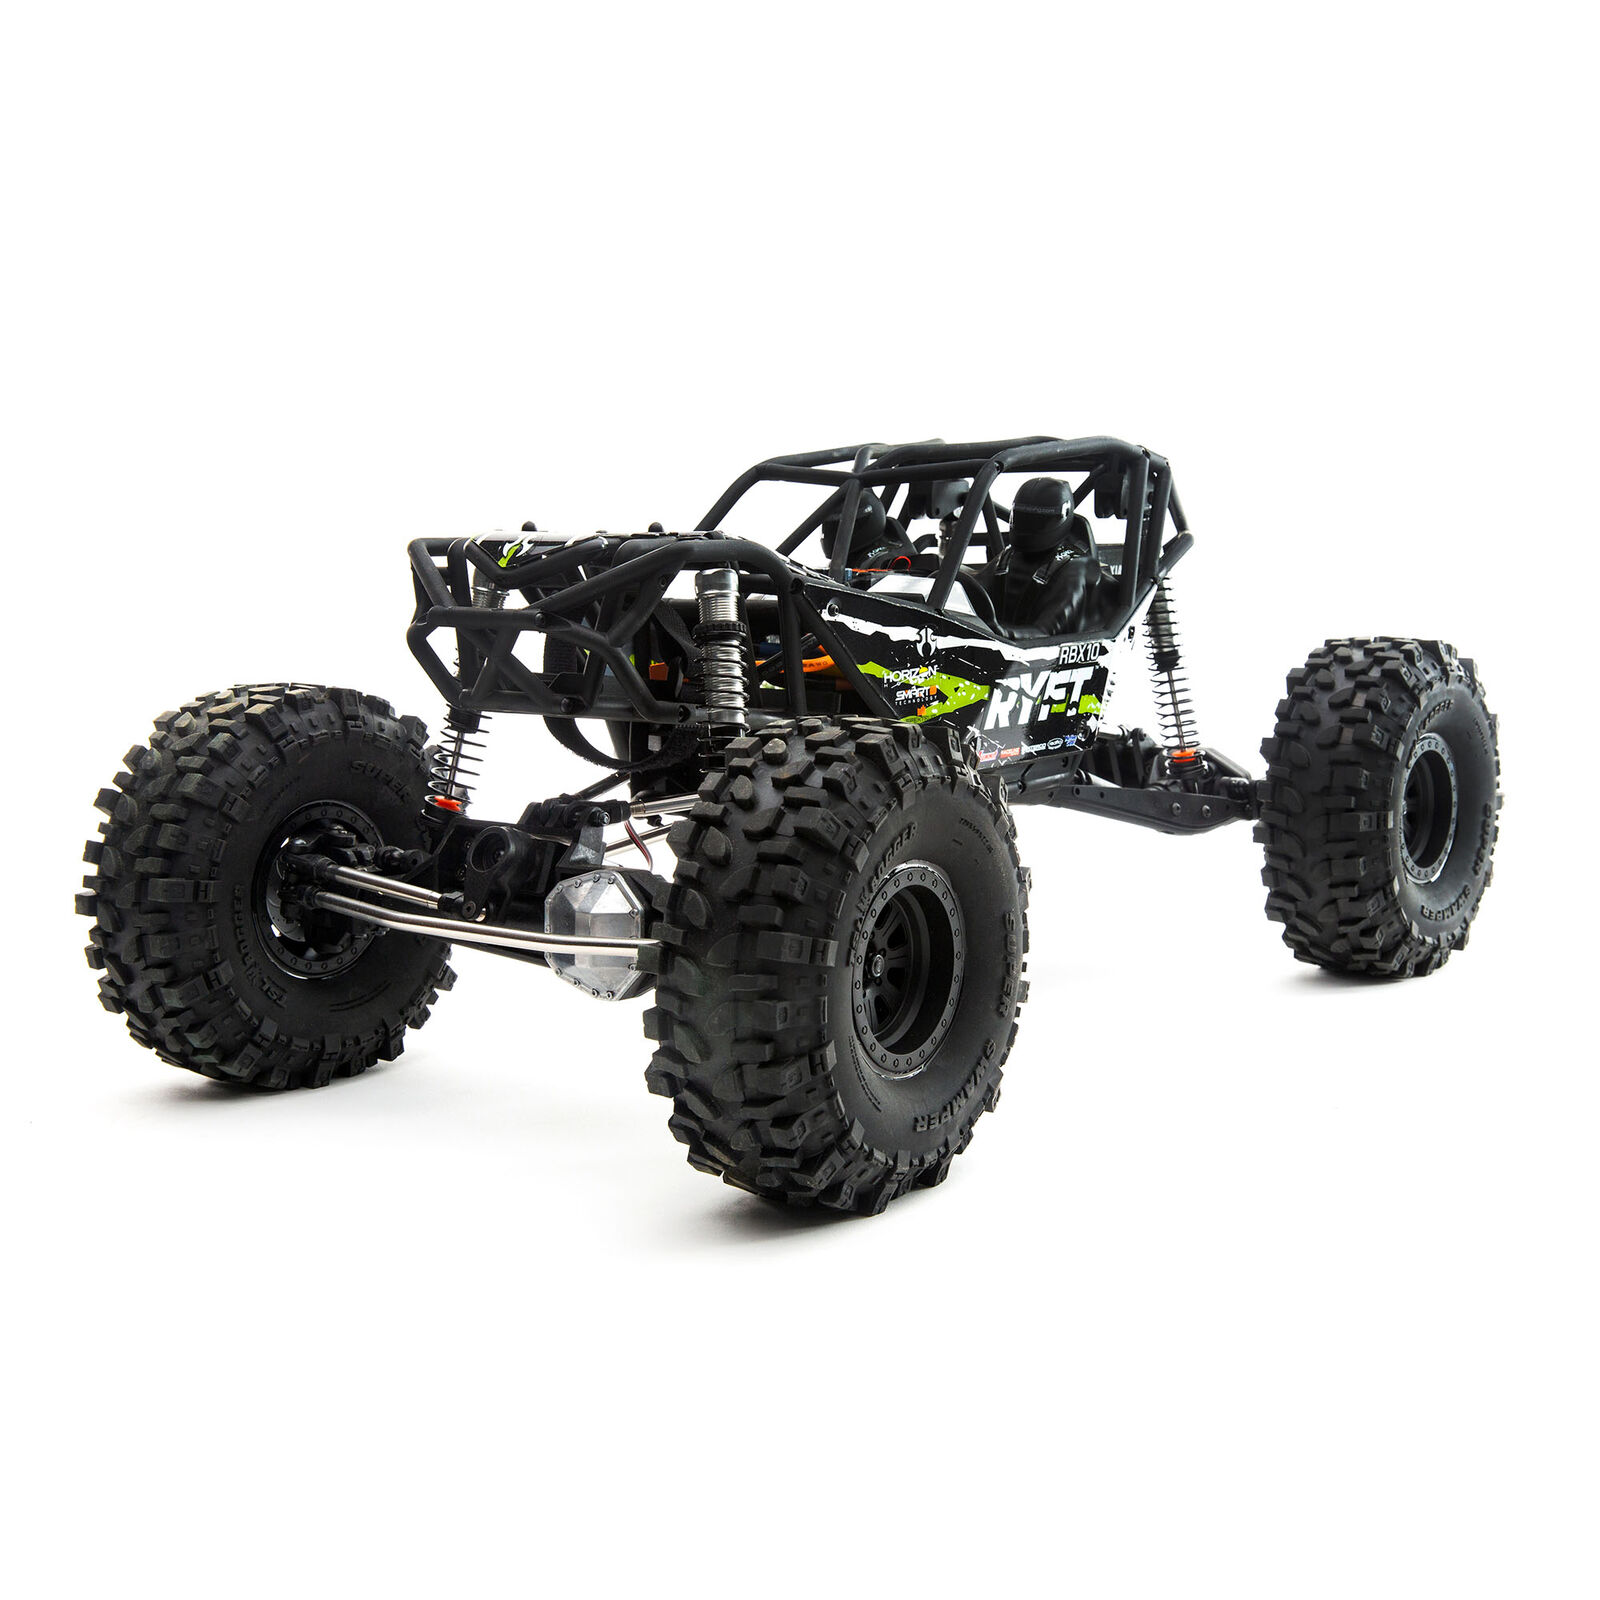 1/10 RBX10 Ryft 4WD Brushless Rock Bouncer RTR, Black